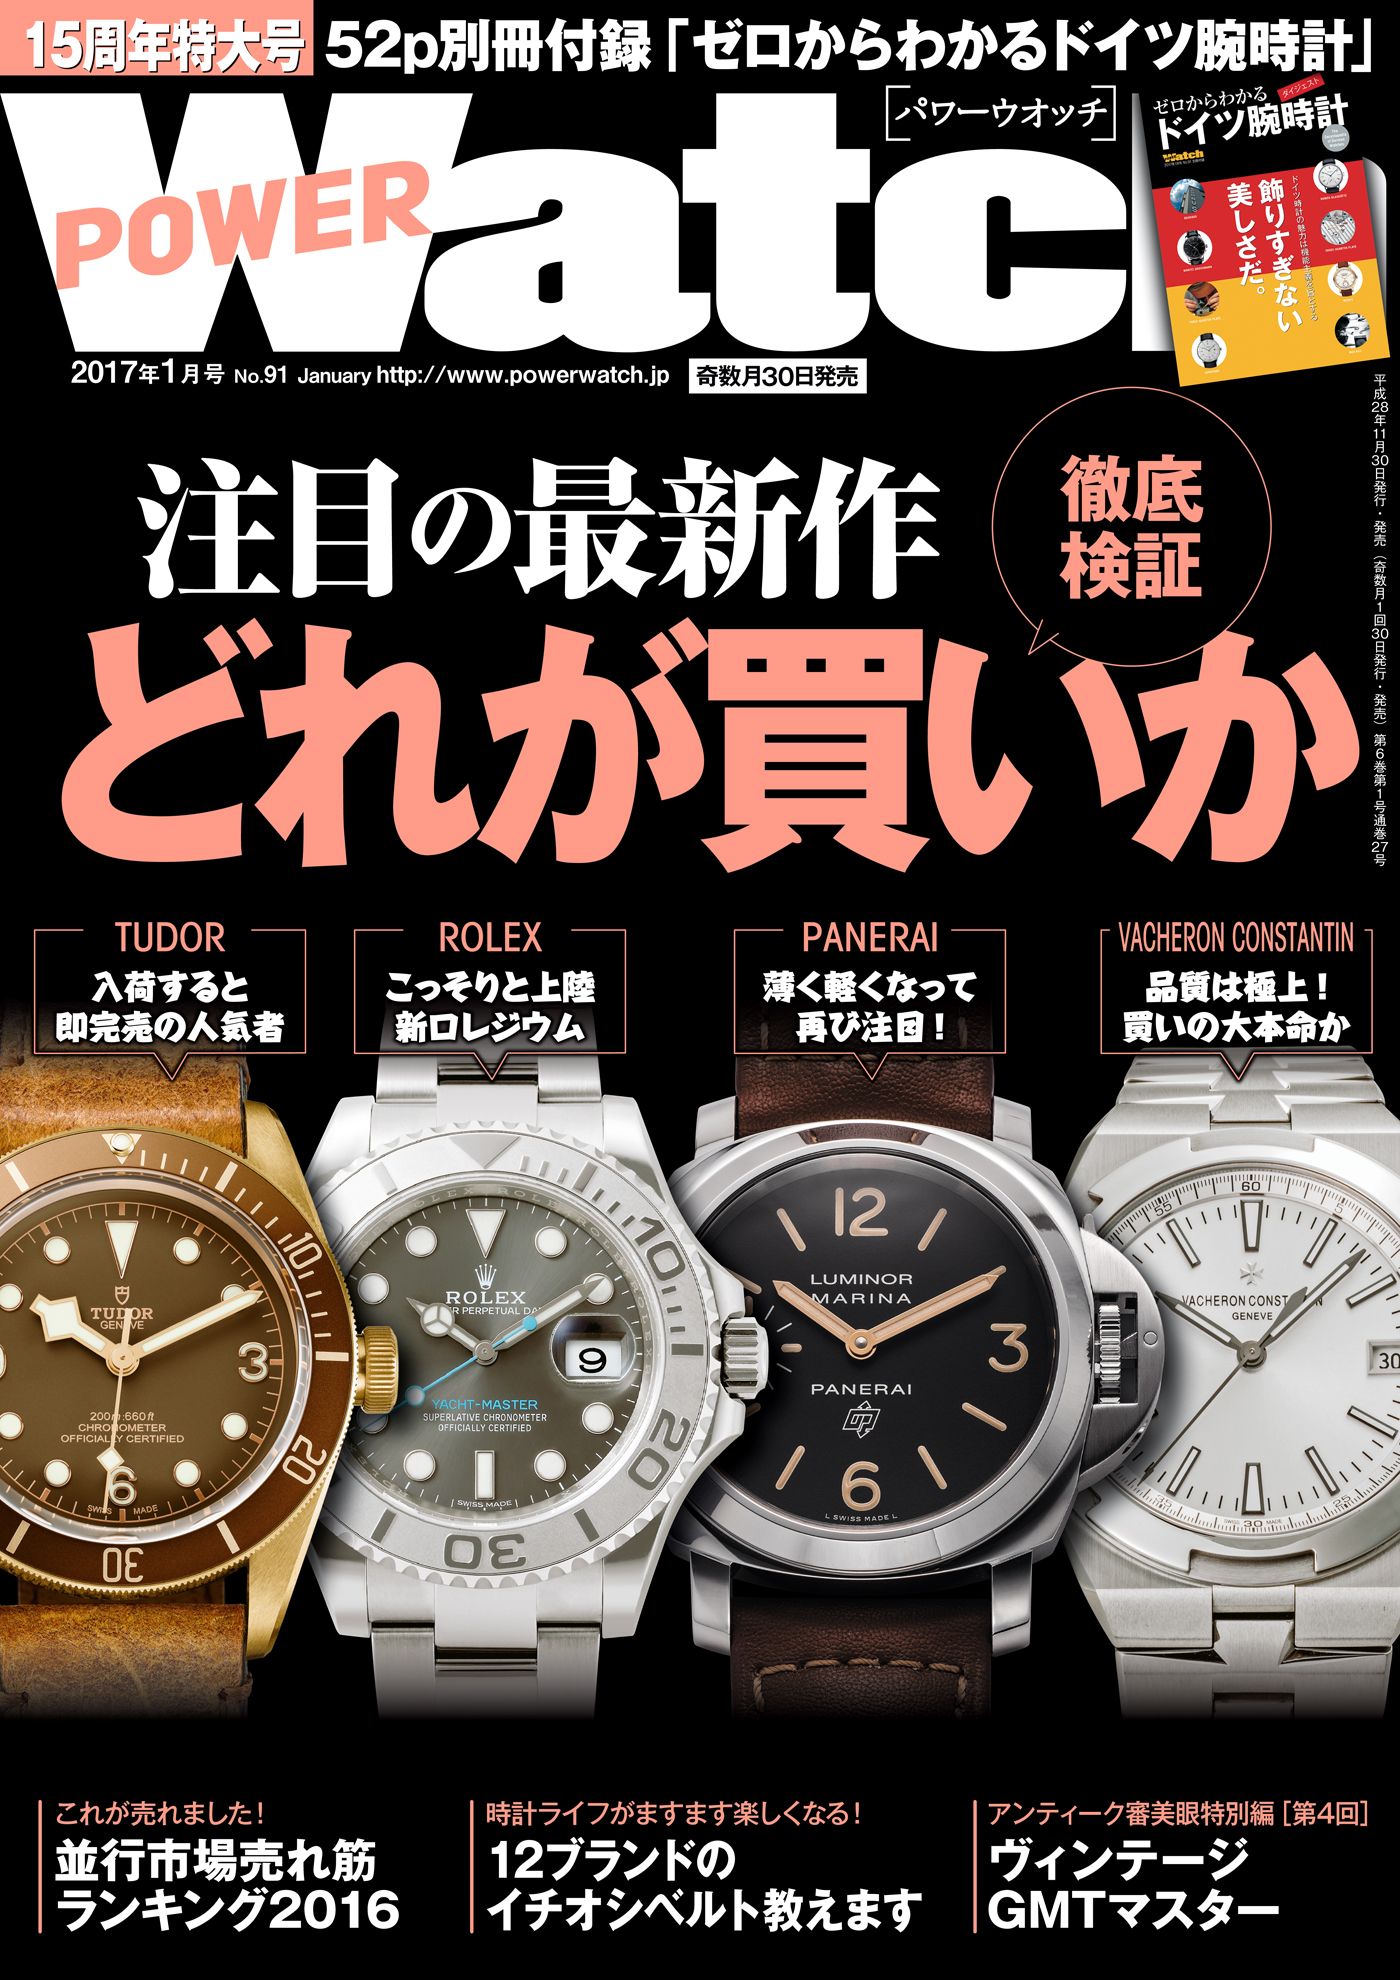 C's-Factory|電子書籍|POWER Watch No.91